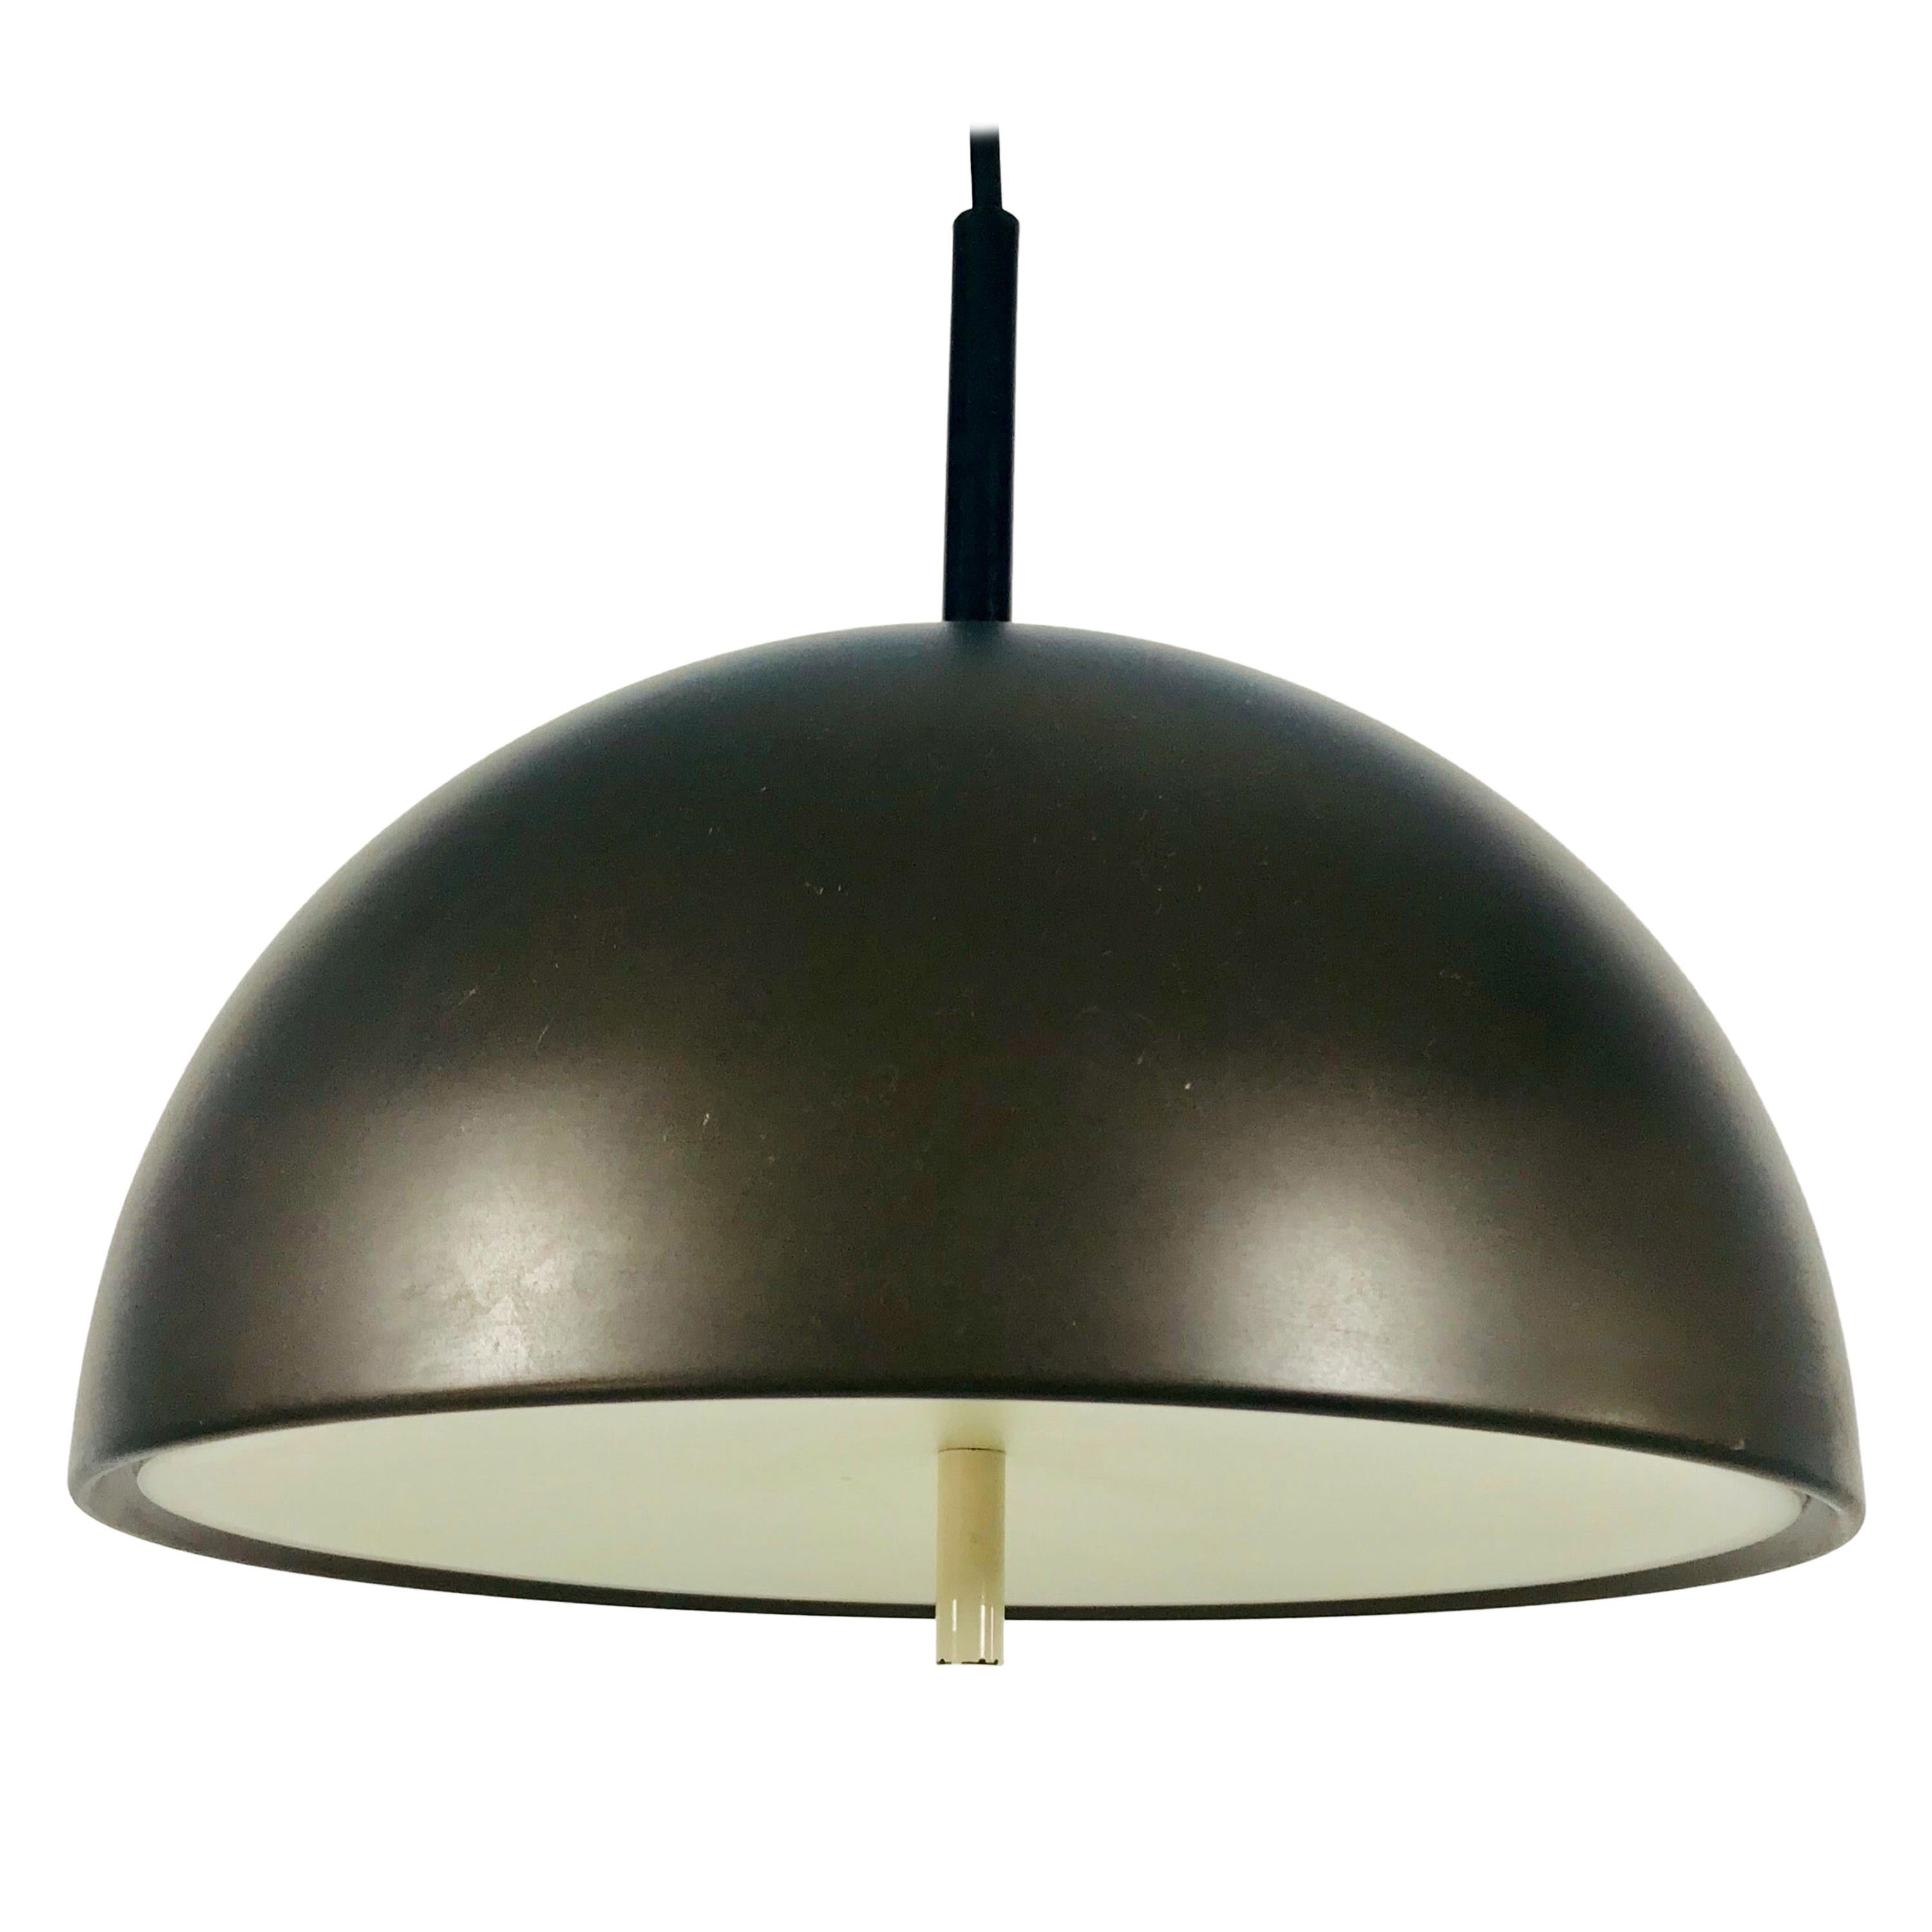 Staff Brown Hanging Lamp, 1970s, Germany